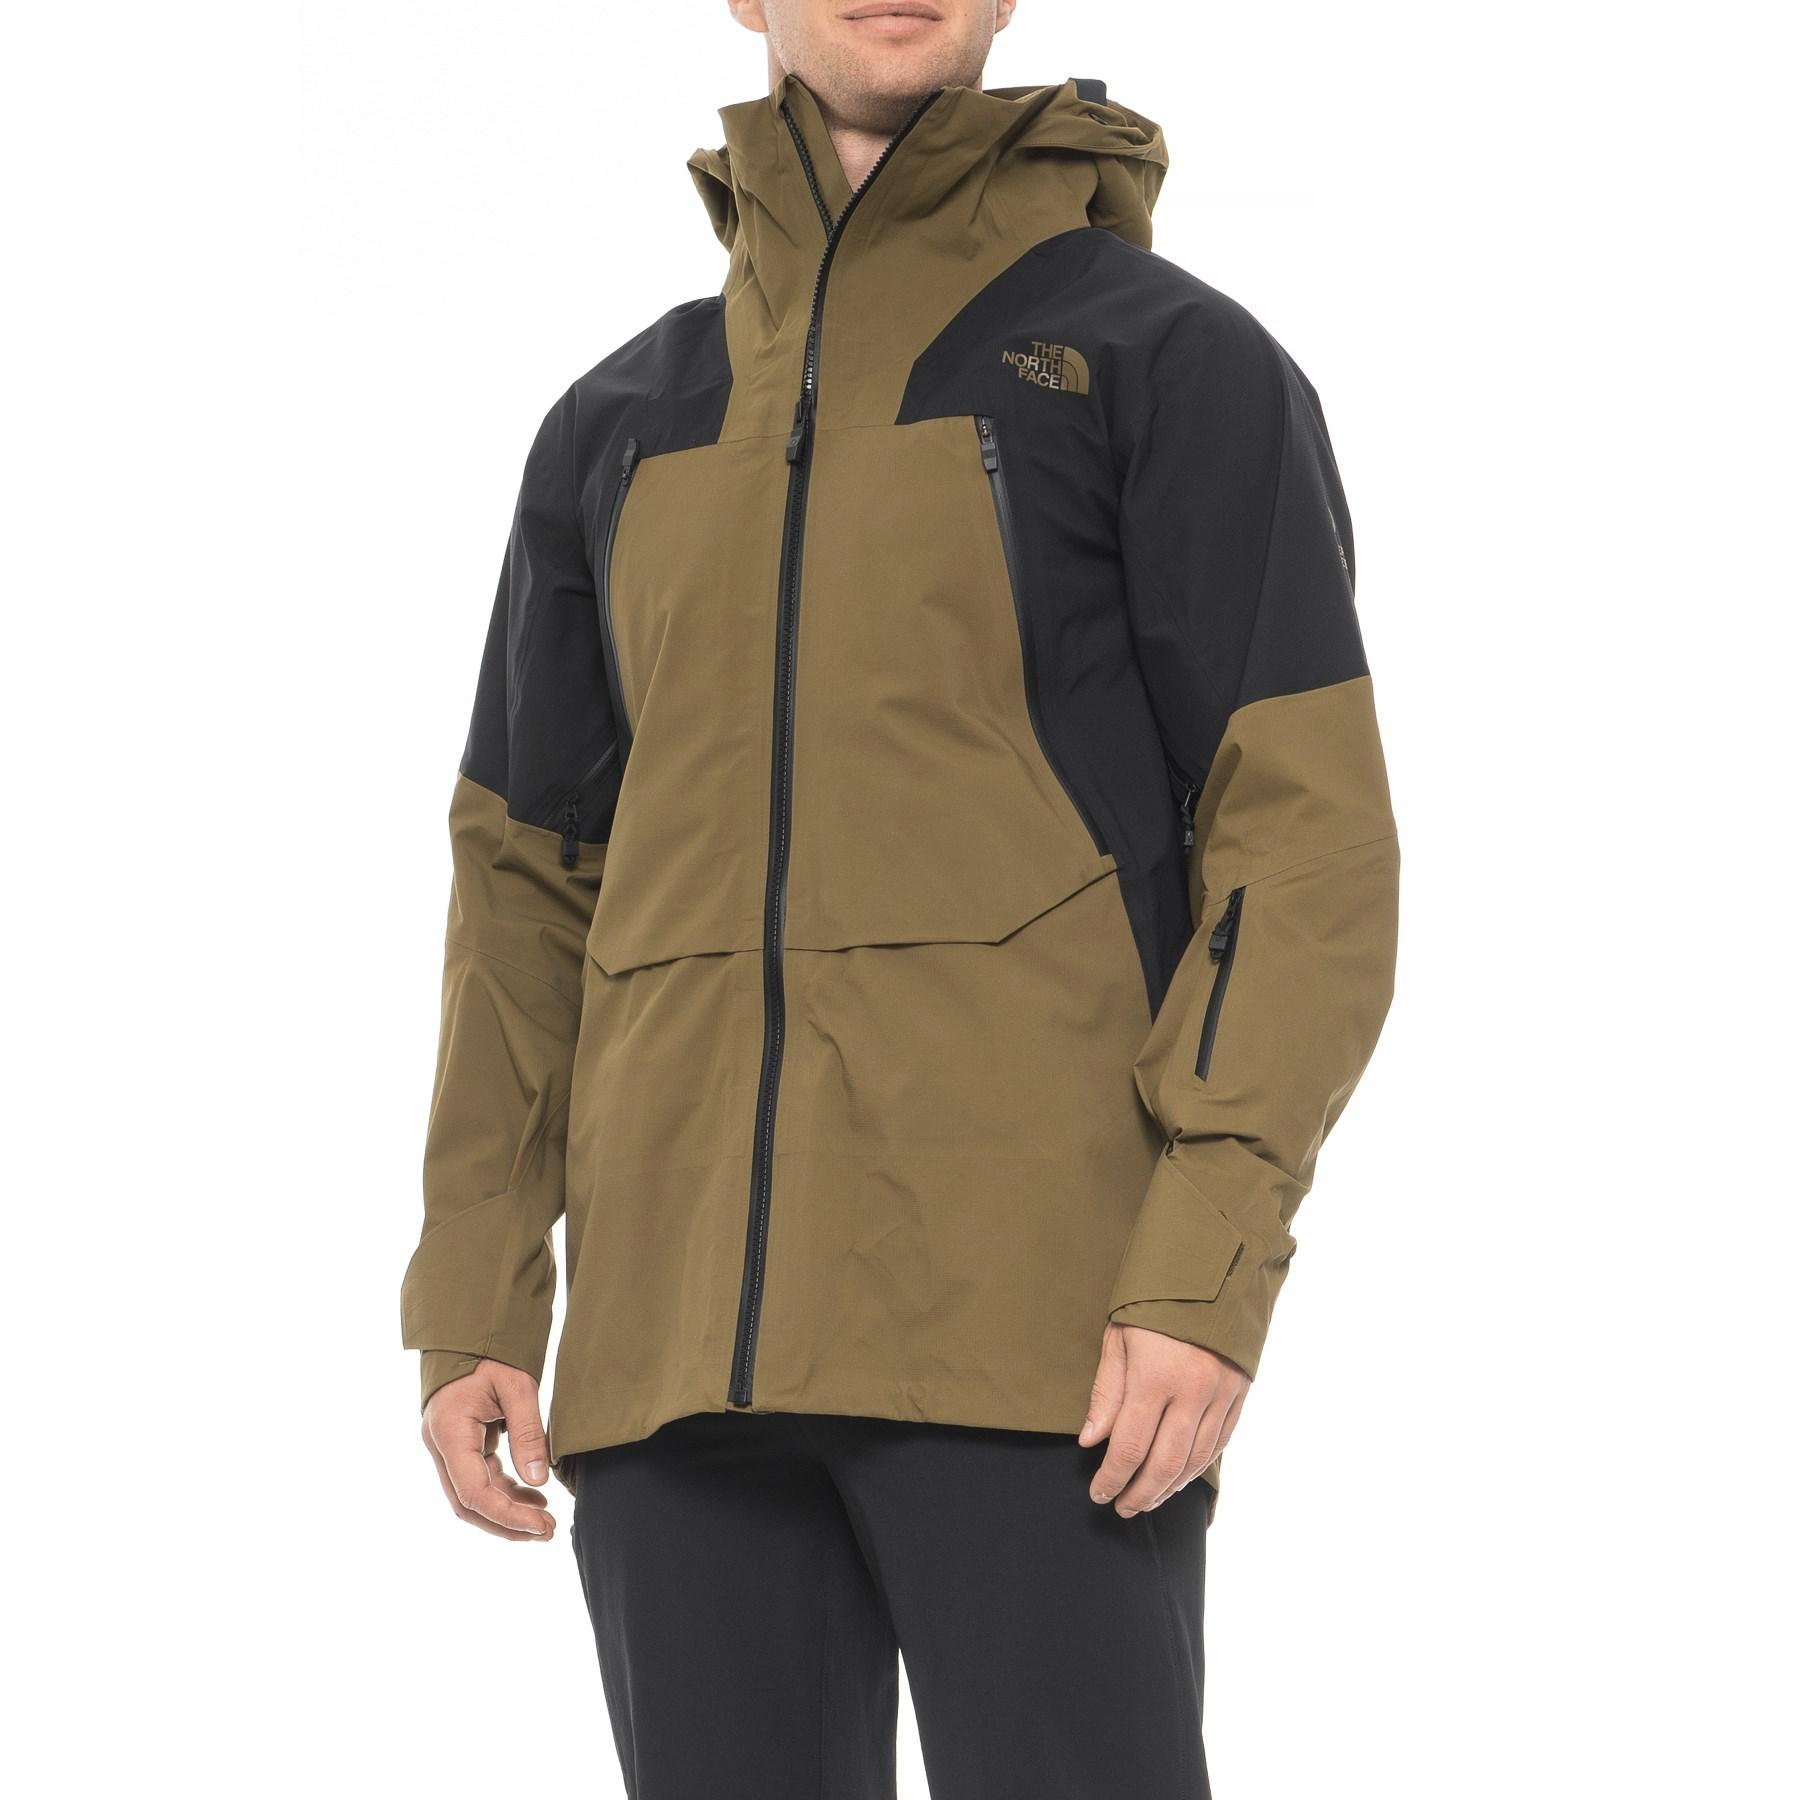 f58f010caec6 Lyst - The North Face Purist Triclimate® Gore-tex®jacket in Green ...